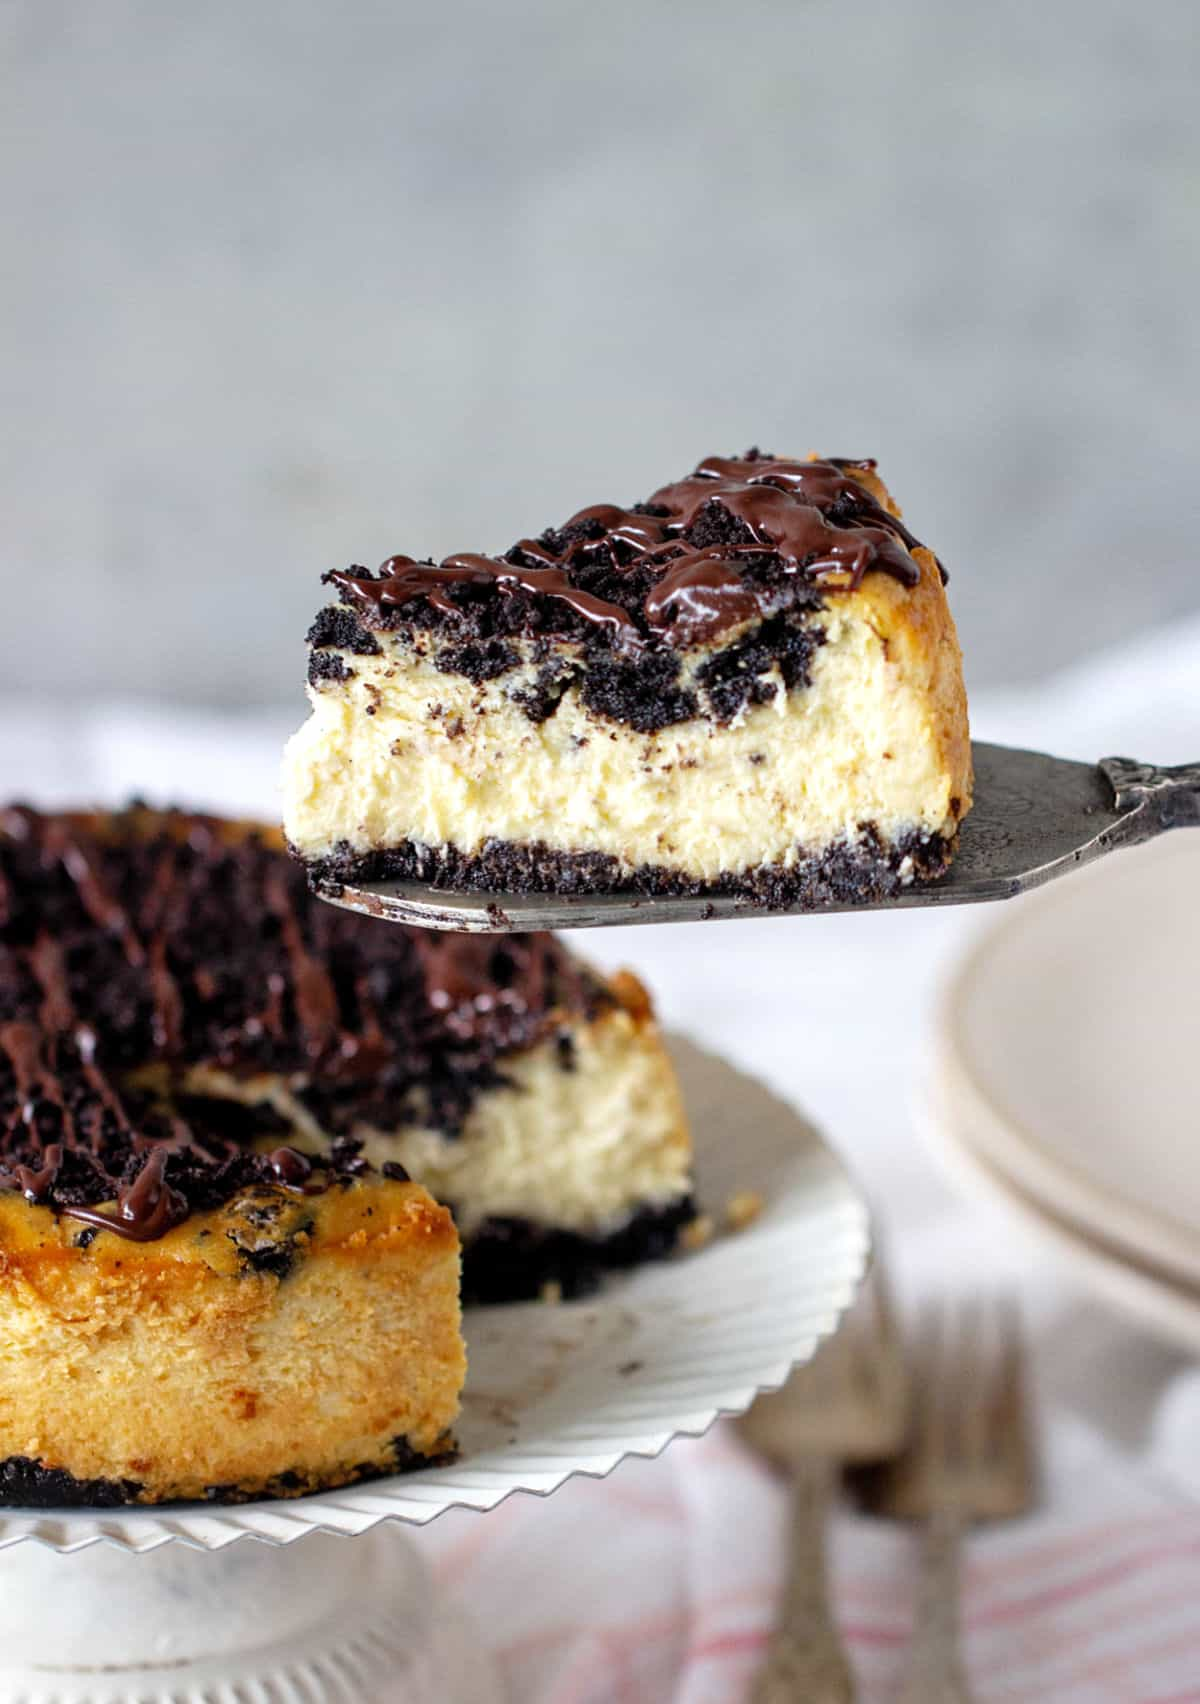 Whole oreo cheesecake on white cake stand with single slice floating above in silver cake server